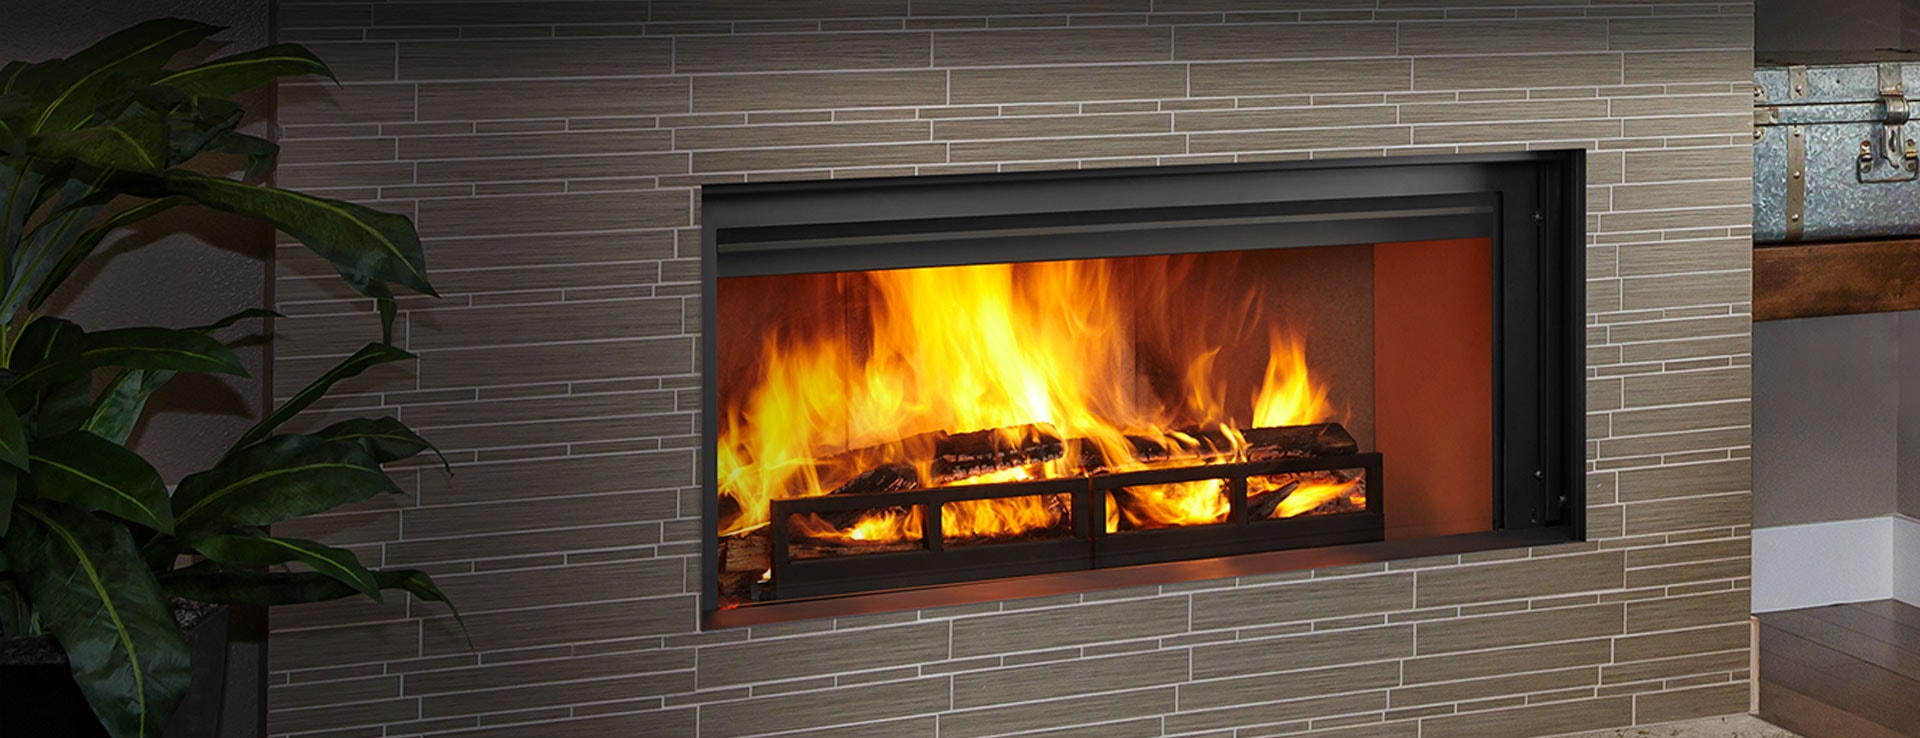 your napoleon fireplaces high image fireplace burning cleaning product main country wood spring